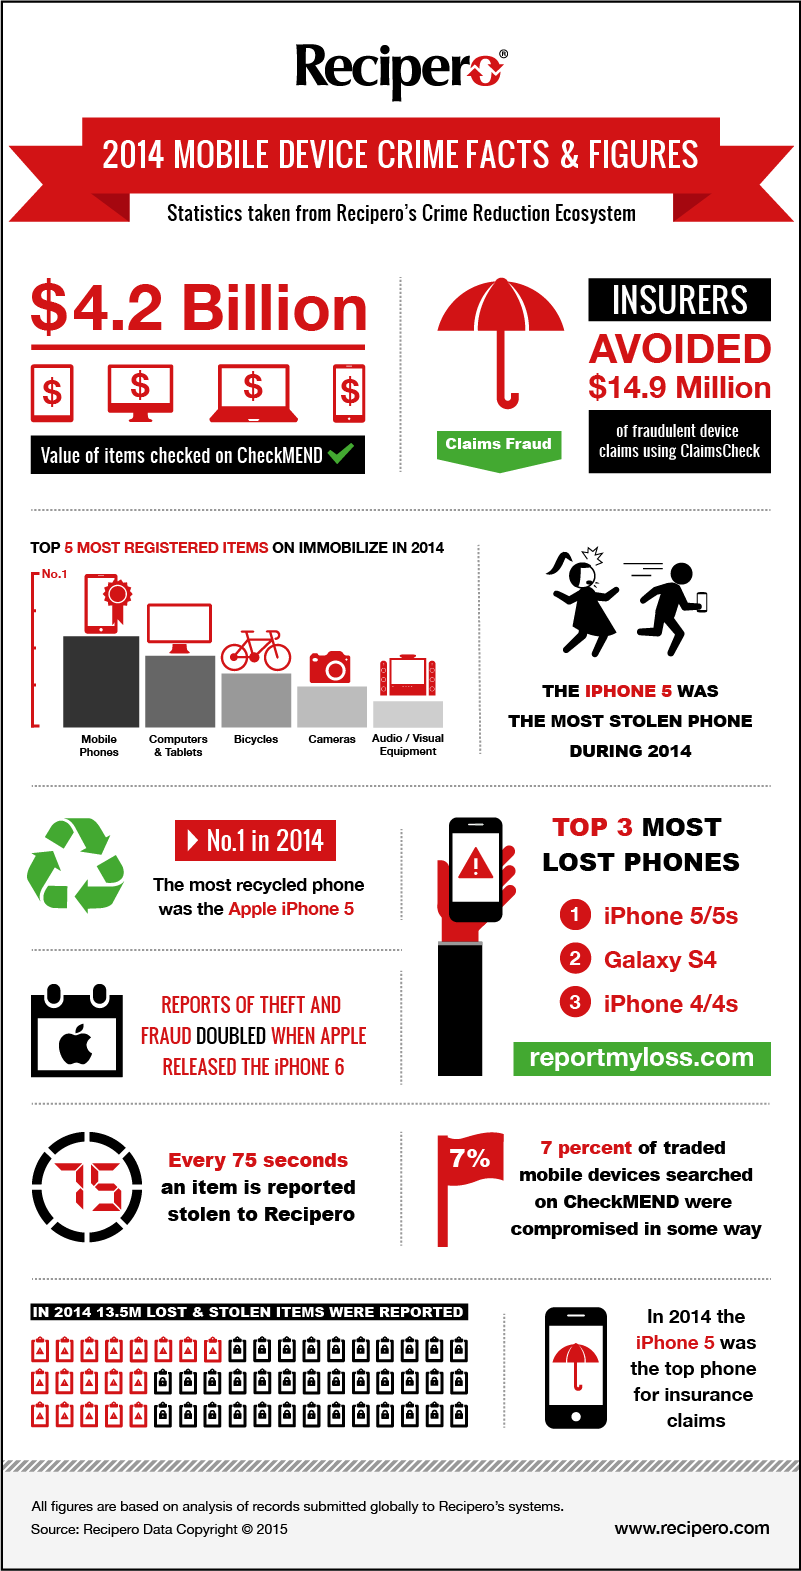 Recipero 2014 Mobile Device Crime Facts and Figures